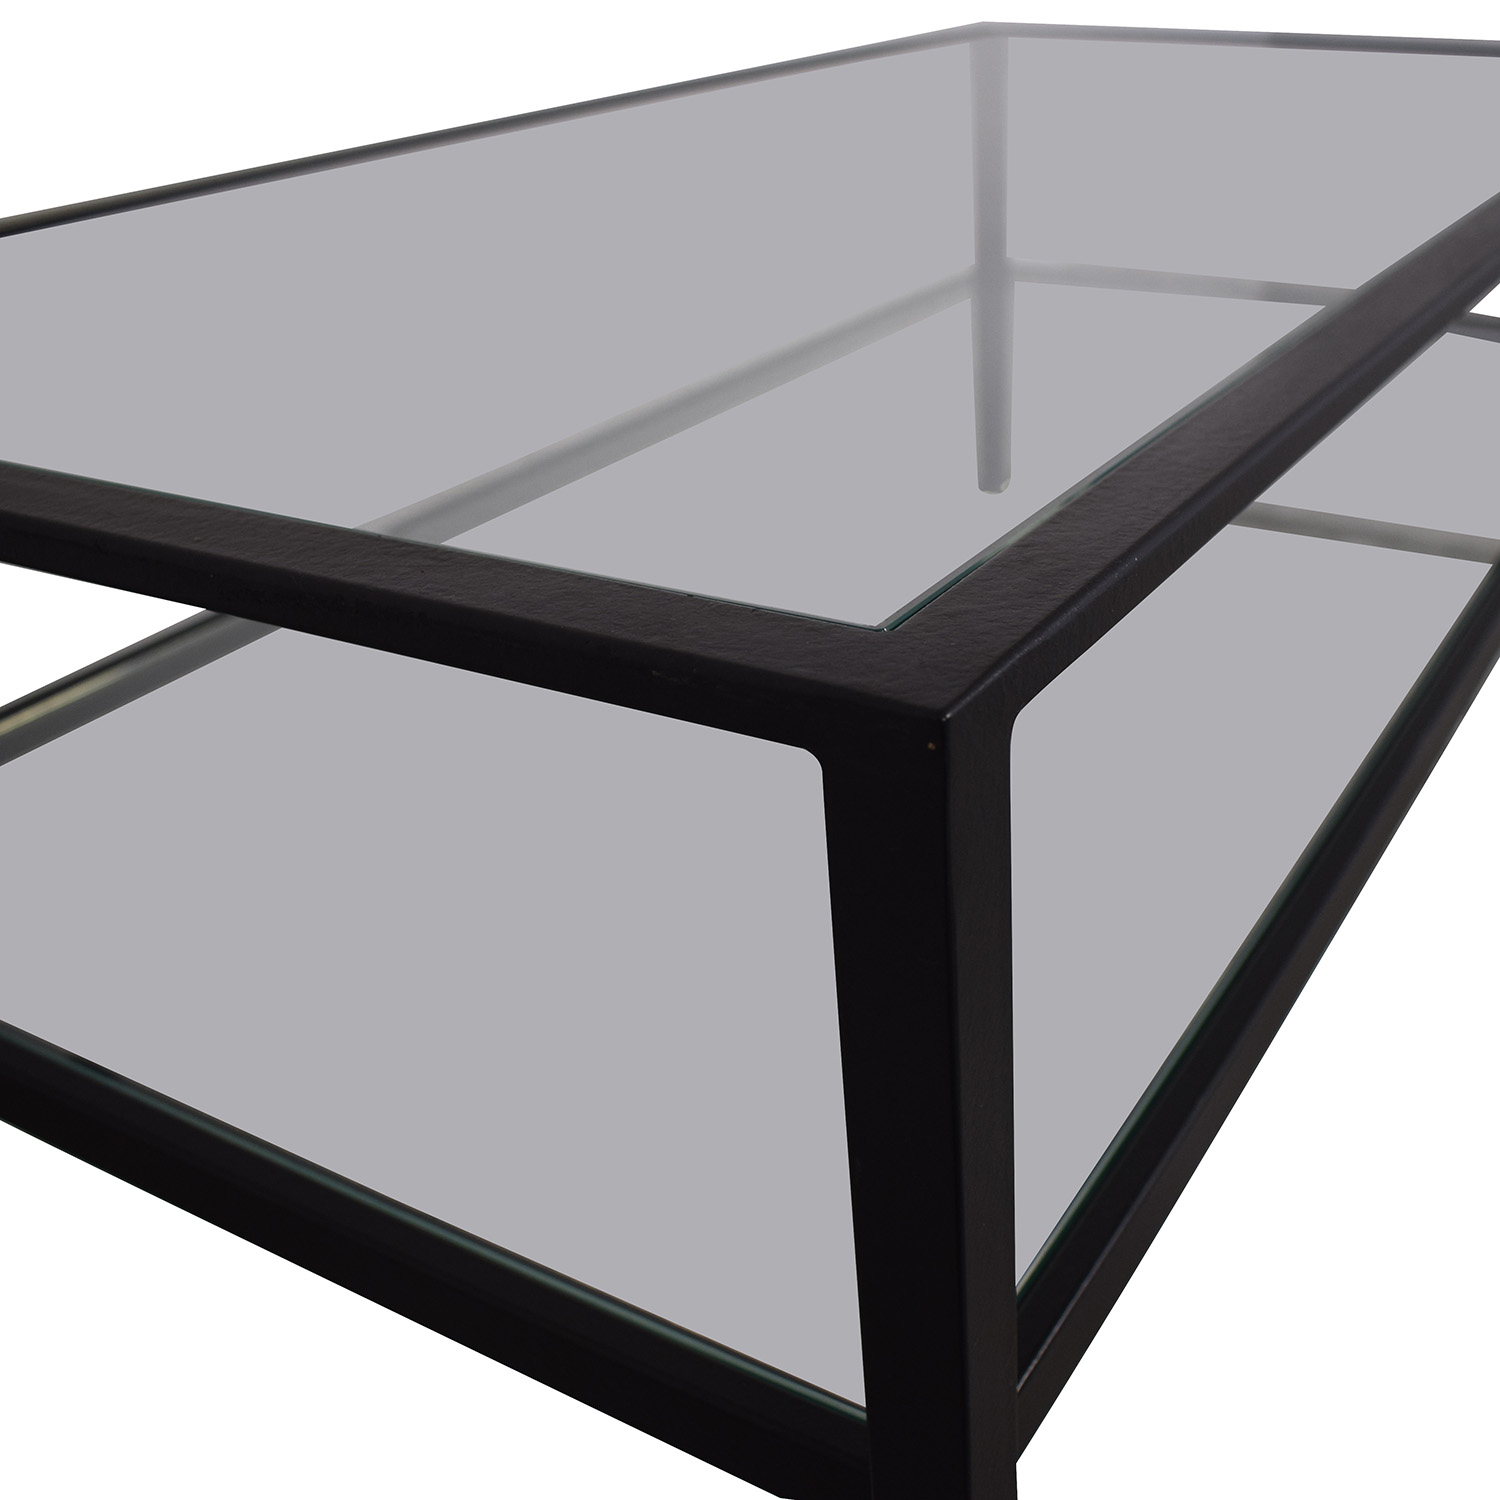 Pottery Barn Pottery Barn Glass and Black Coffee Table second hand